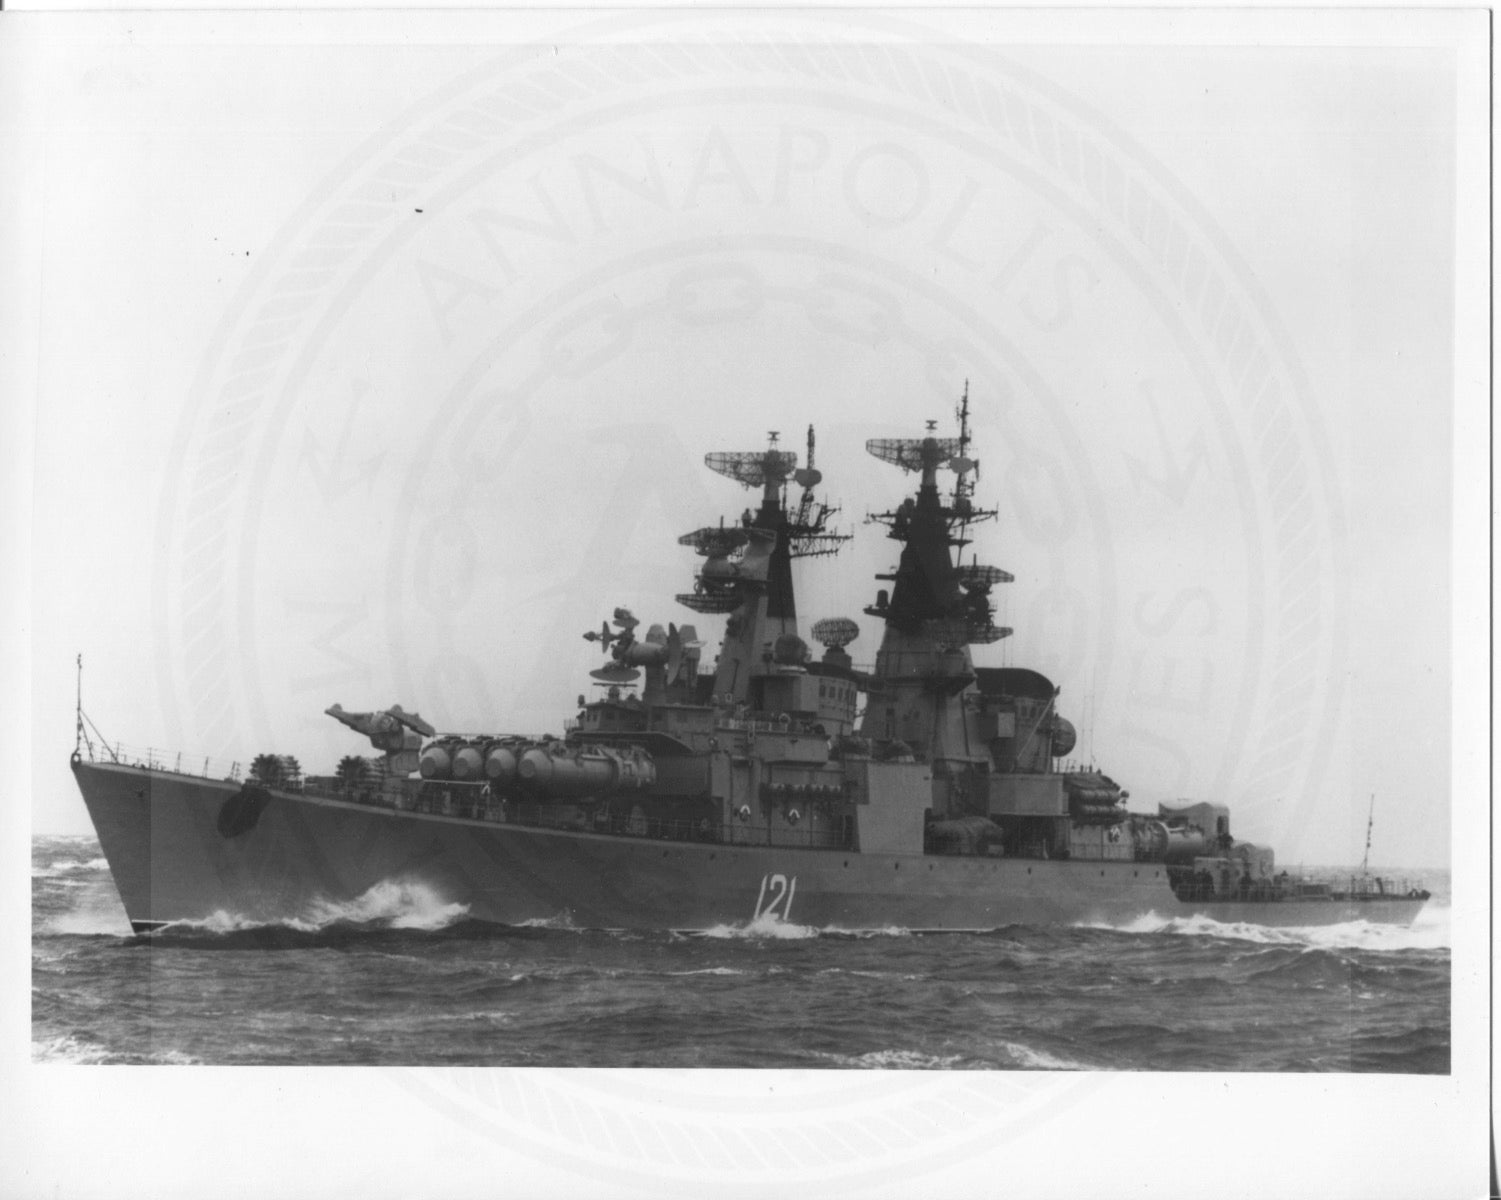 Official U.S. Navy photo the Soviet missile cruiser Kynda class - Annapolis Maritime Antiques